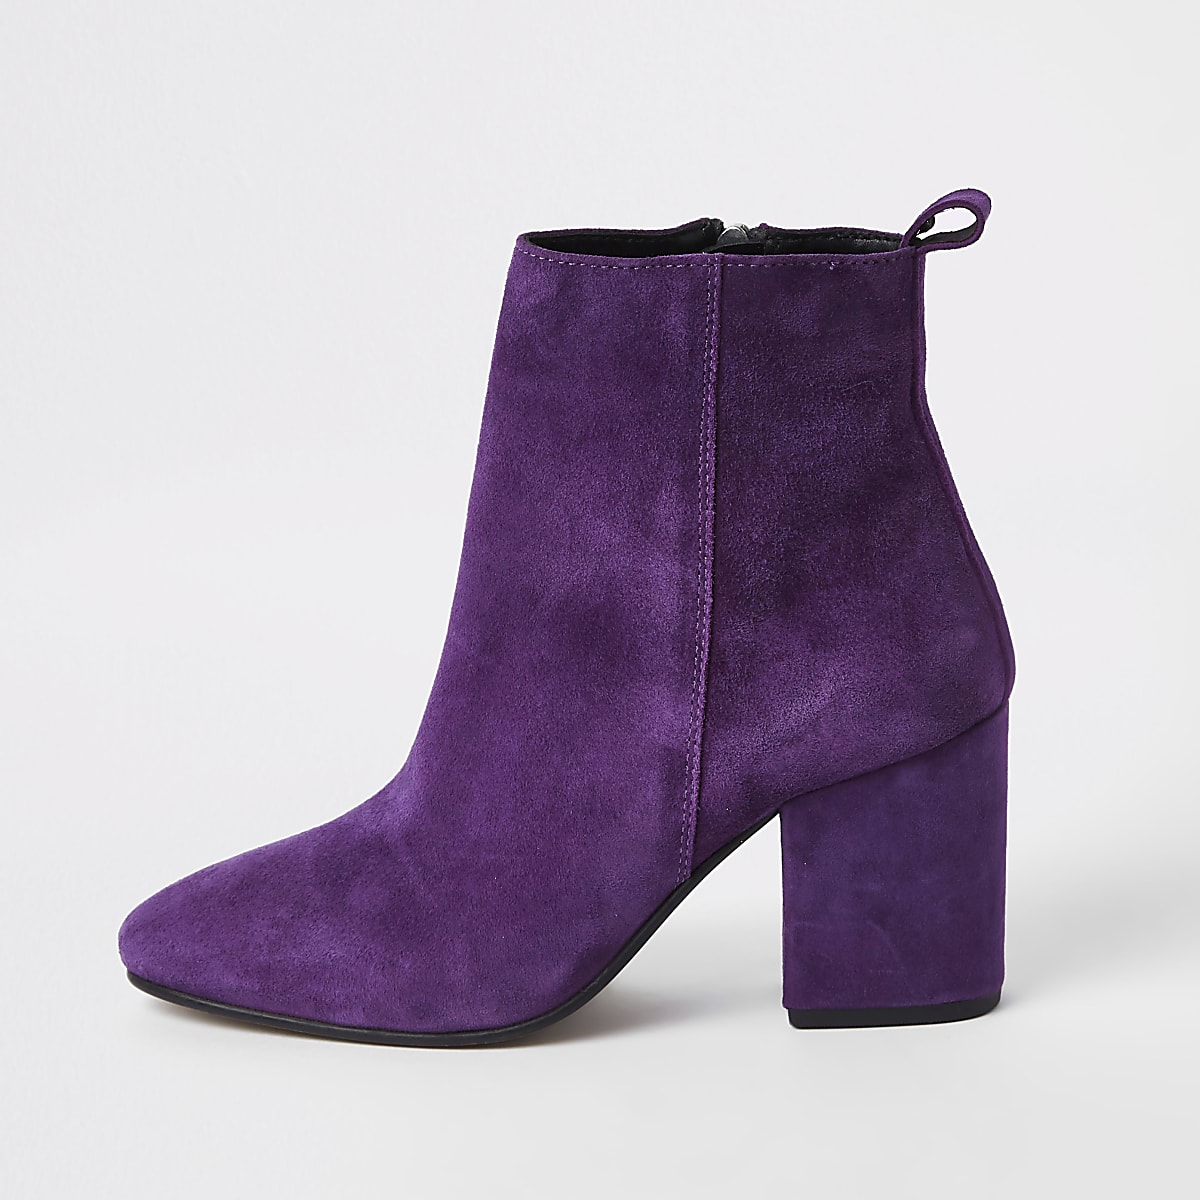 Purple suede block heel boots